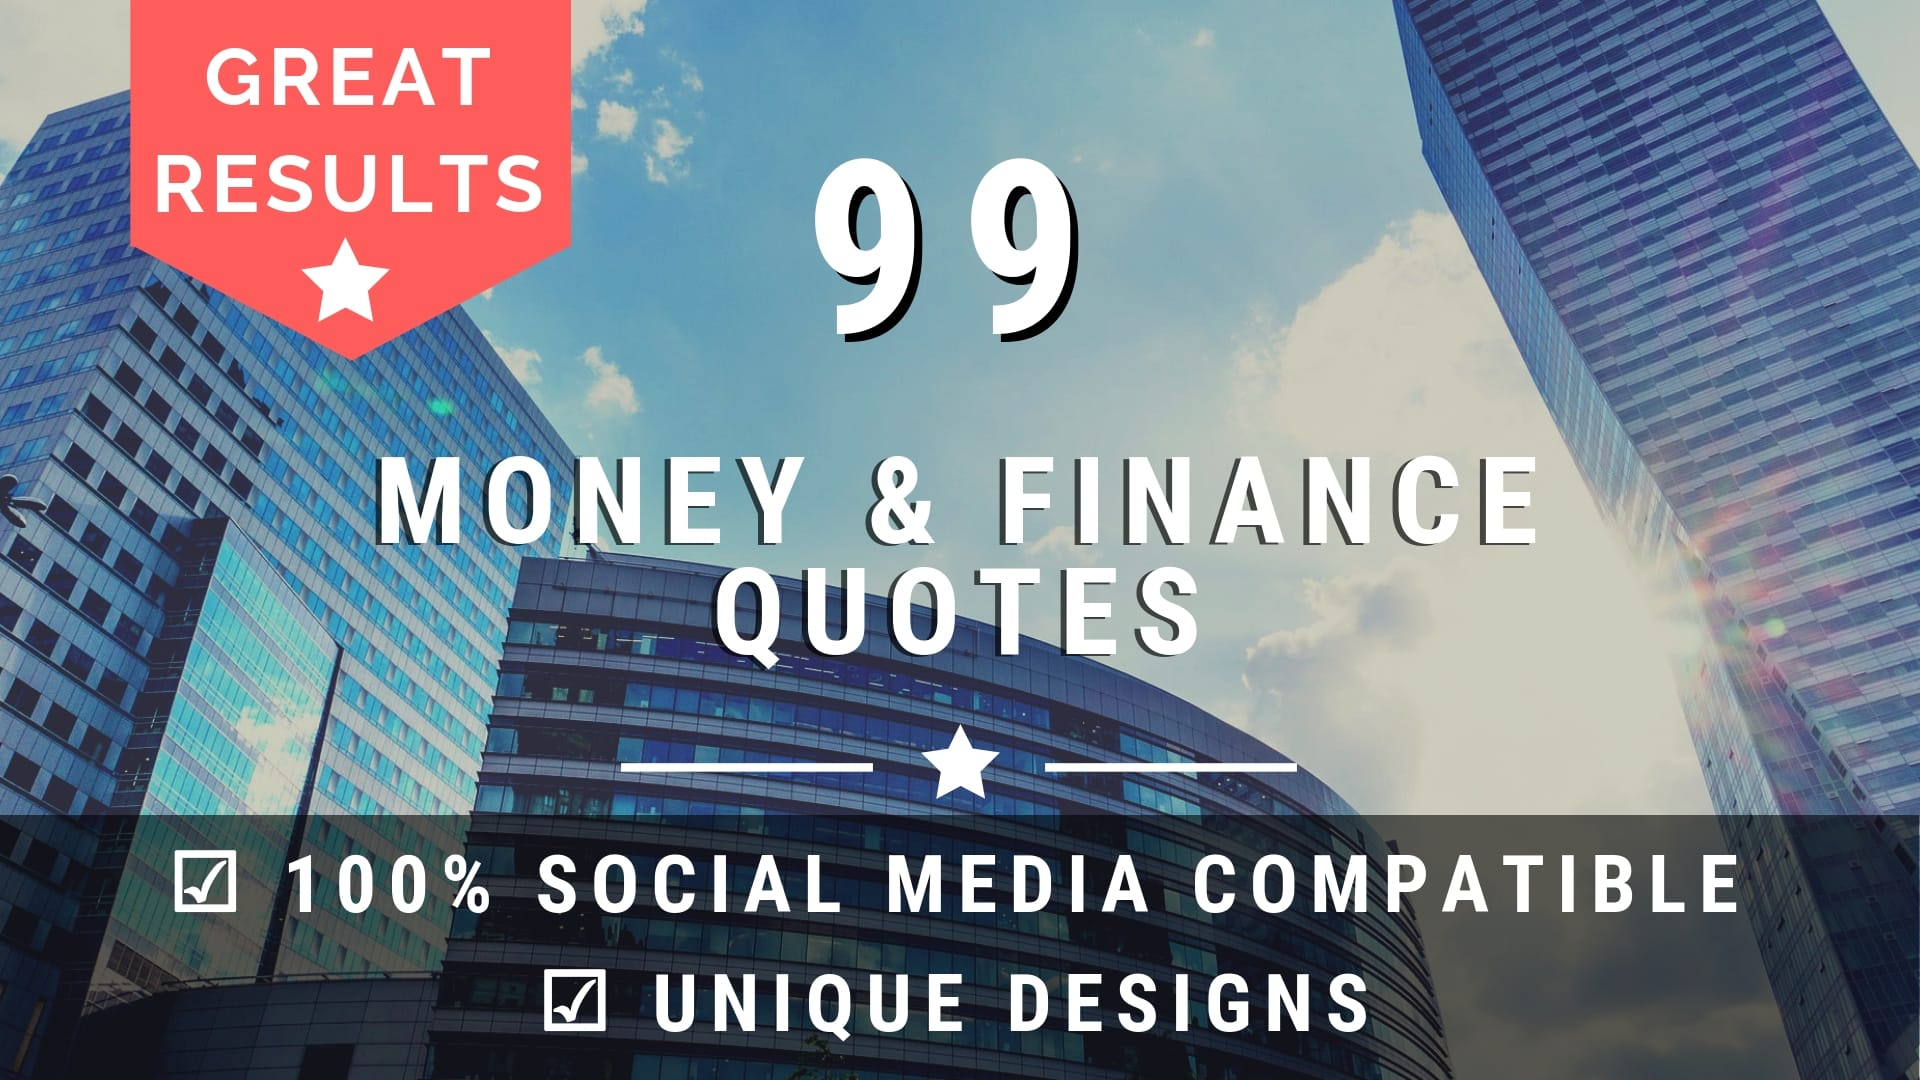 Design 99 Money And Finance Image Quotes With Your Logo By Stepanadrian